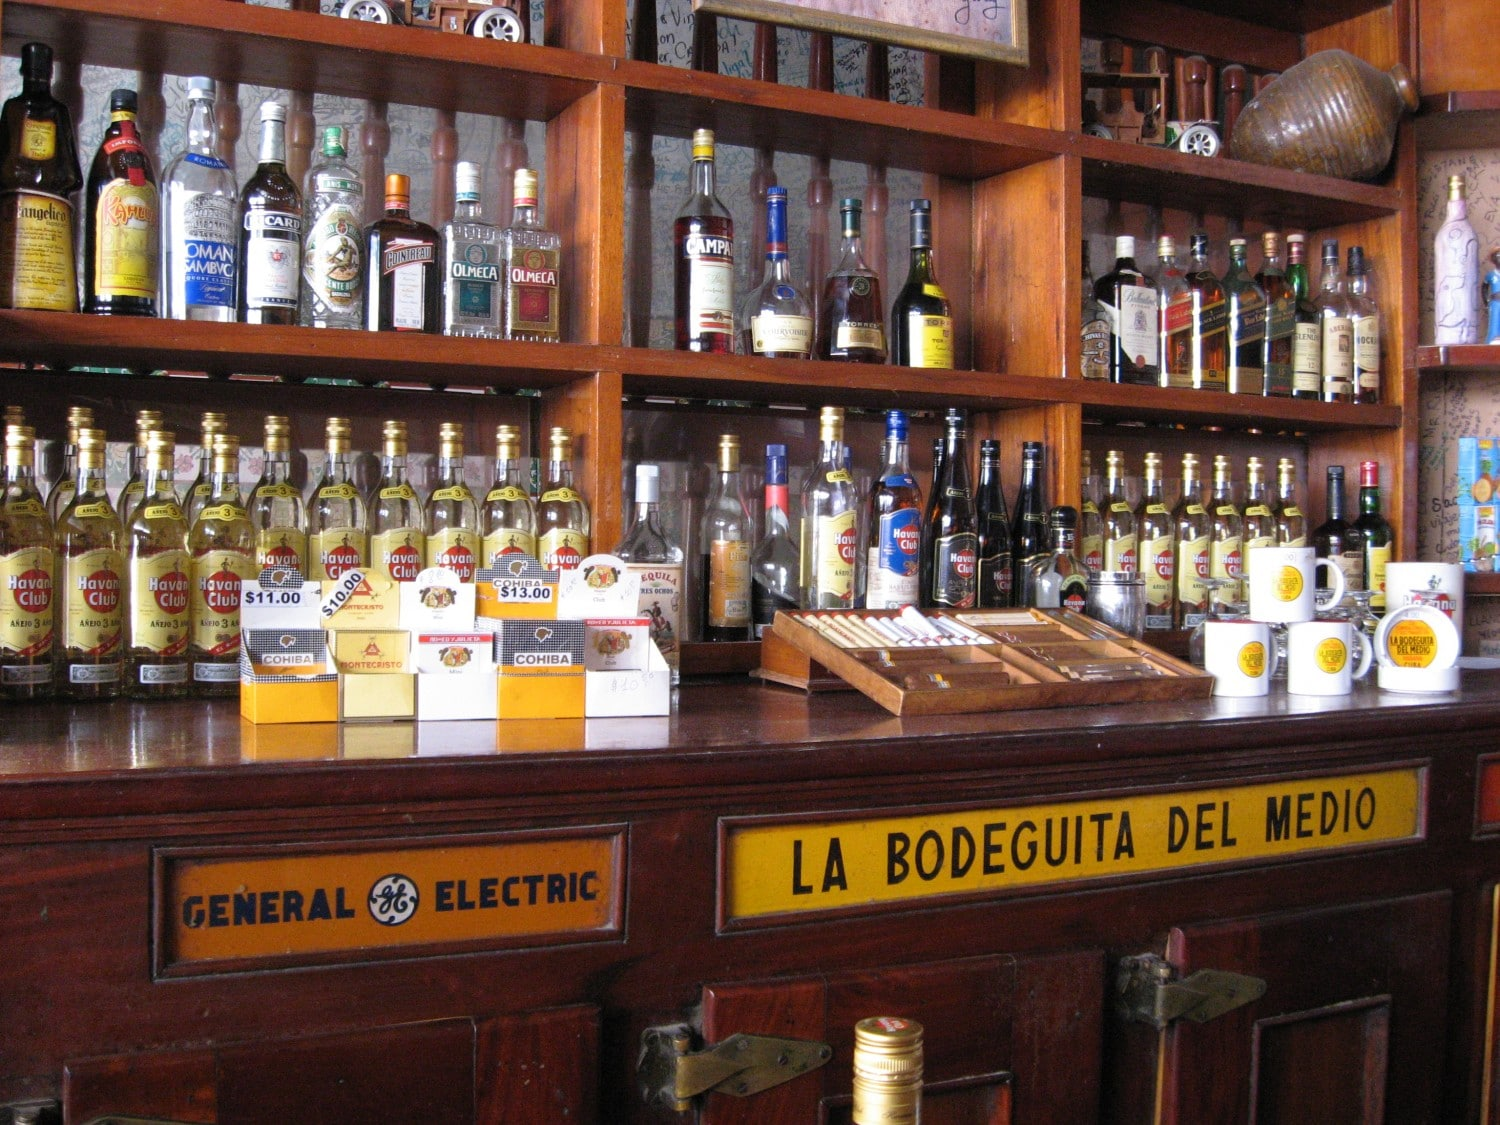 La Bodeguita Del Medio - the original Mojito bar in Havana. Read our guide to the best things to do in Havana now